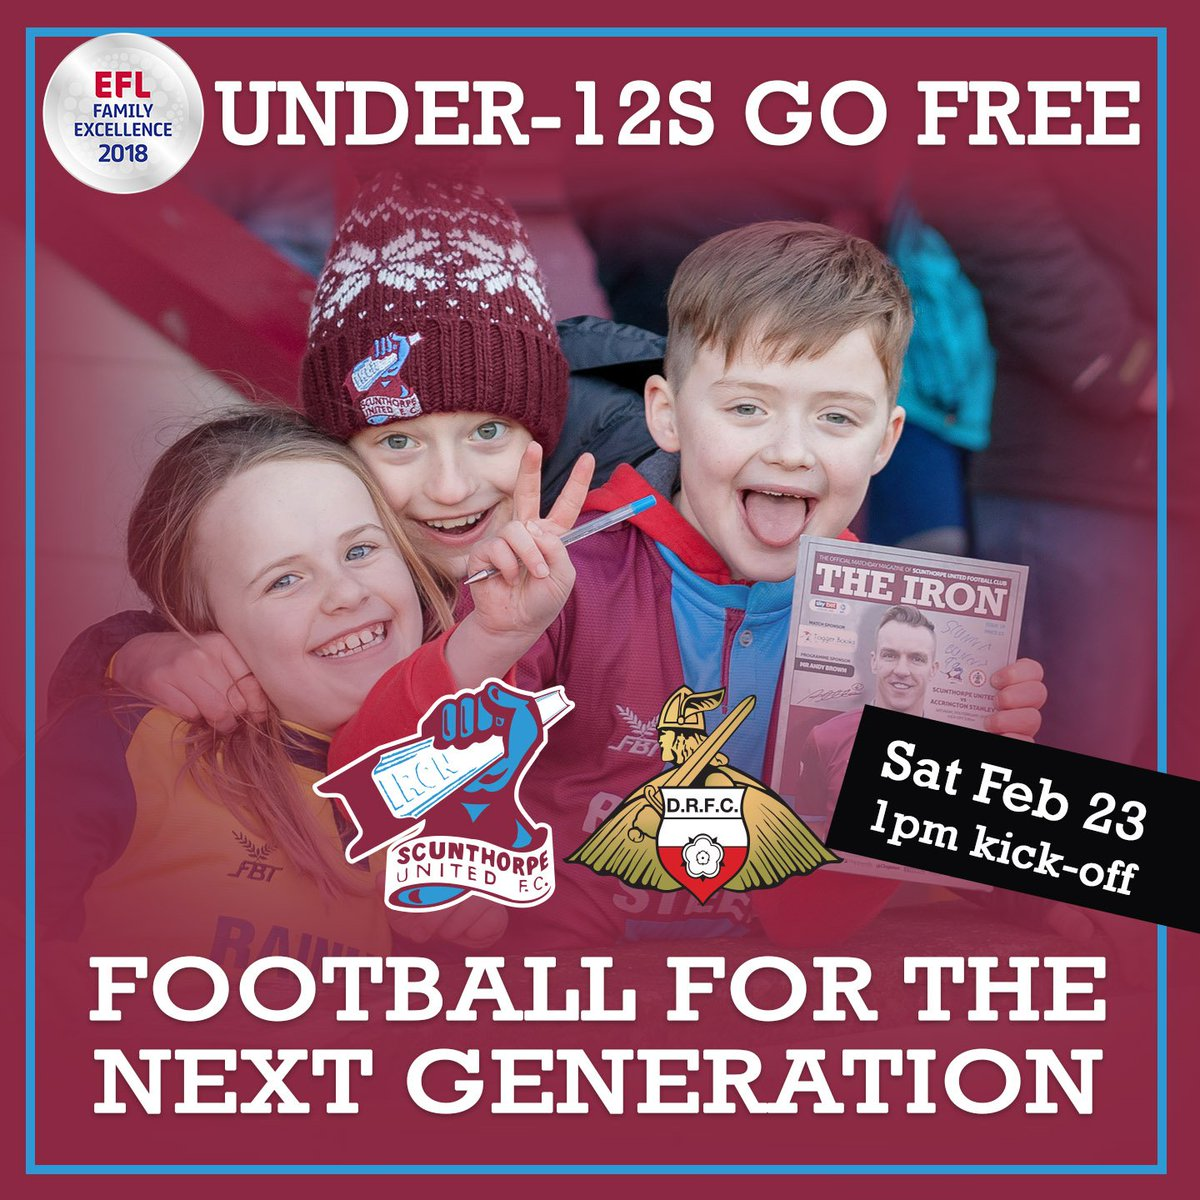 ⚽️👦👧 Derby day and sure to be a great atmosphere, take advantage of our U12s go free offer when we face Doncaster at GP tomorrow and introduce more young fans to the Iron.  Full terms and conditions 👉 https://t.co/JwvsT5UhNs  #UTI  #IRON